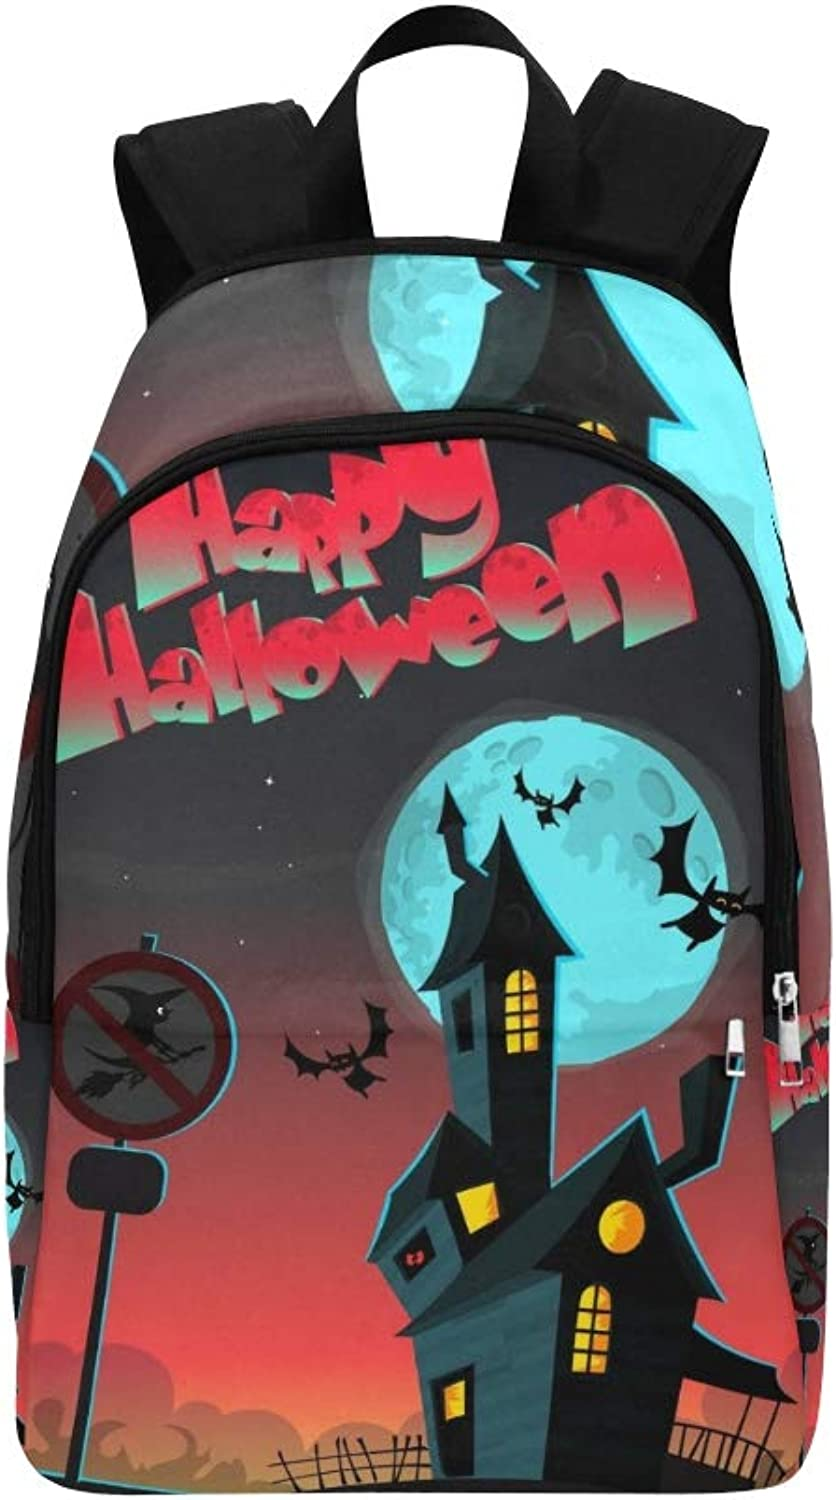 Cartoon Haunted House Halloween Greeting Card Casual Daypack Travel Bag College School Backpack for Mens and Women